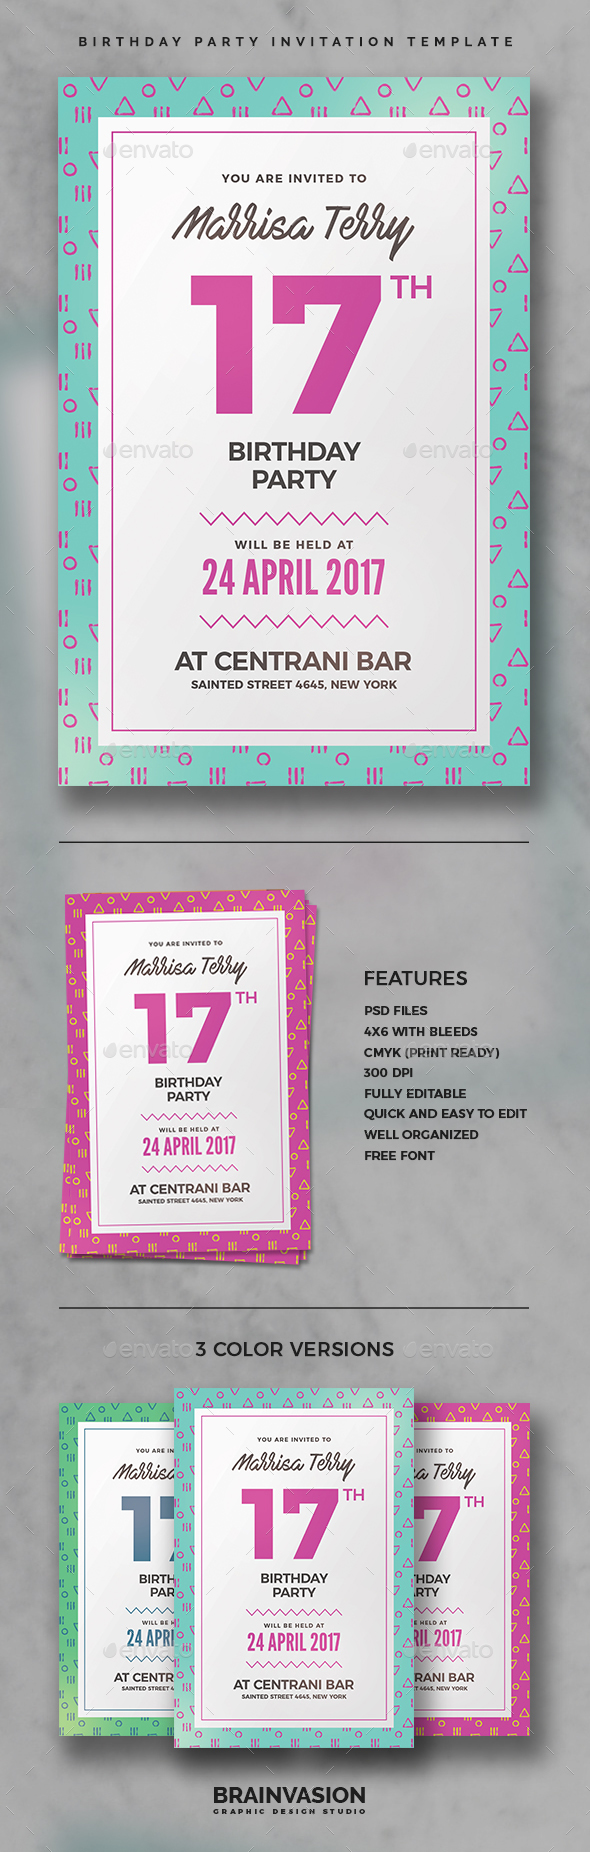 Birthday Party Invitation Template - Invitations Cards & Invites